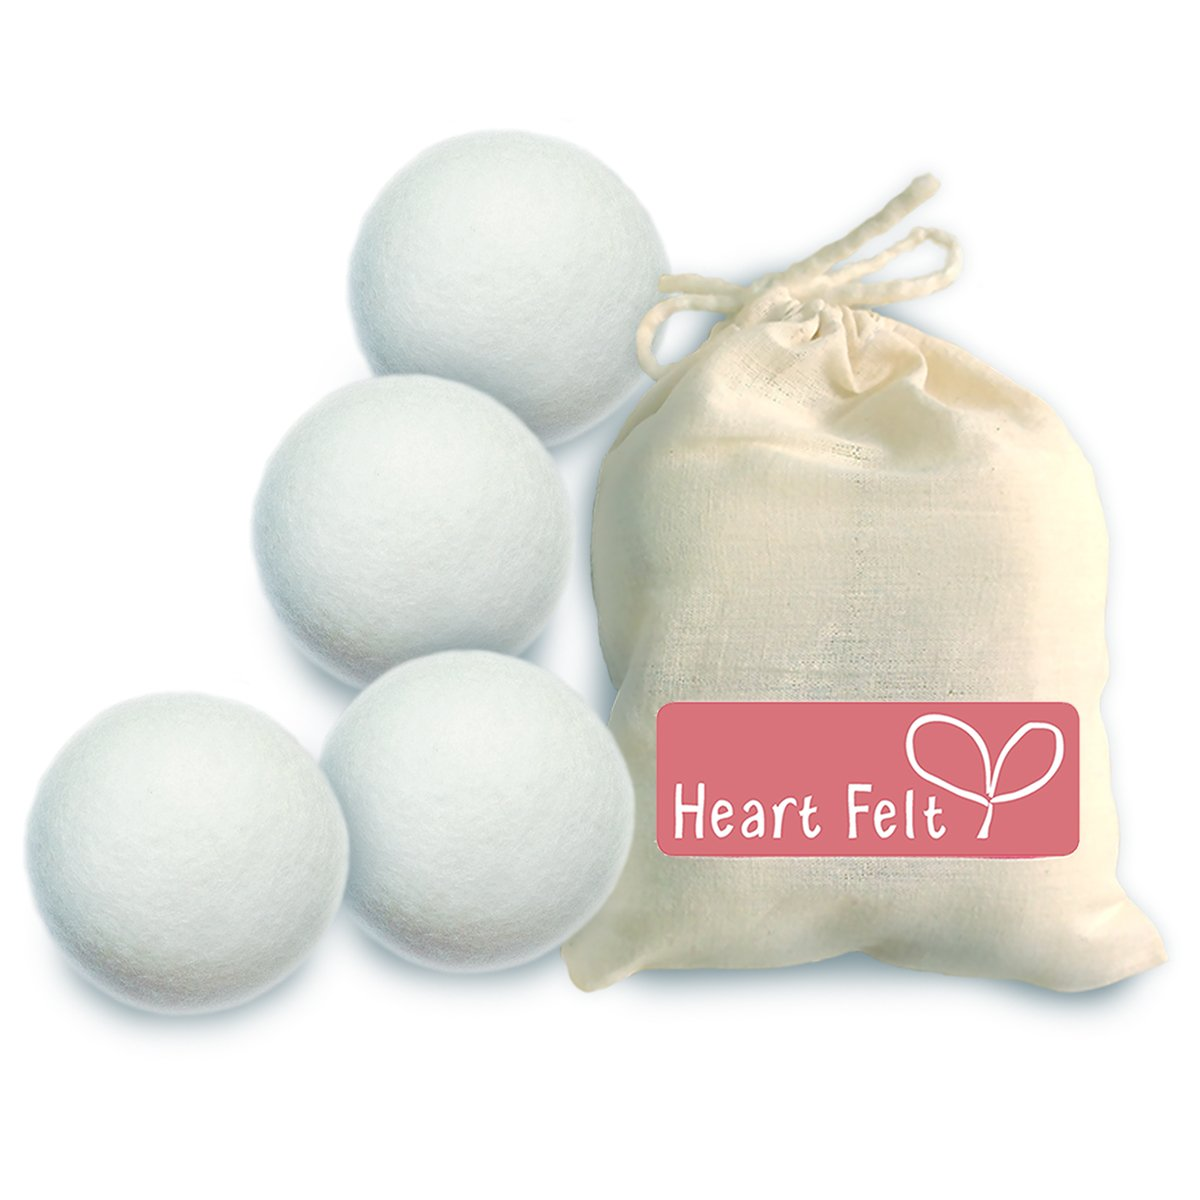 Heart Felt Wool Dryer Balls (4 Pack XL) Pure New Zealand Wool, No Cheap Fillers, Natural Reusable Non-Toxic Fabric Softener, Reduces Drying Time